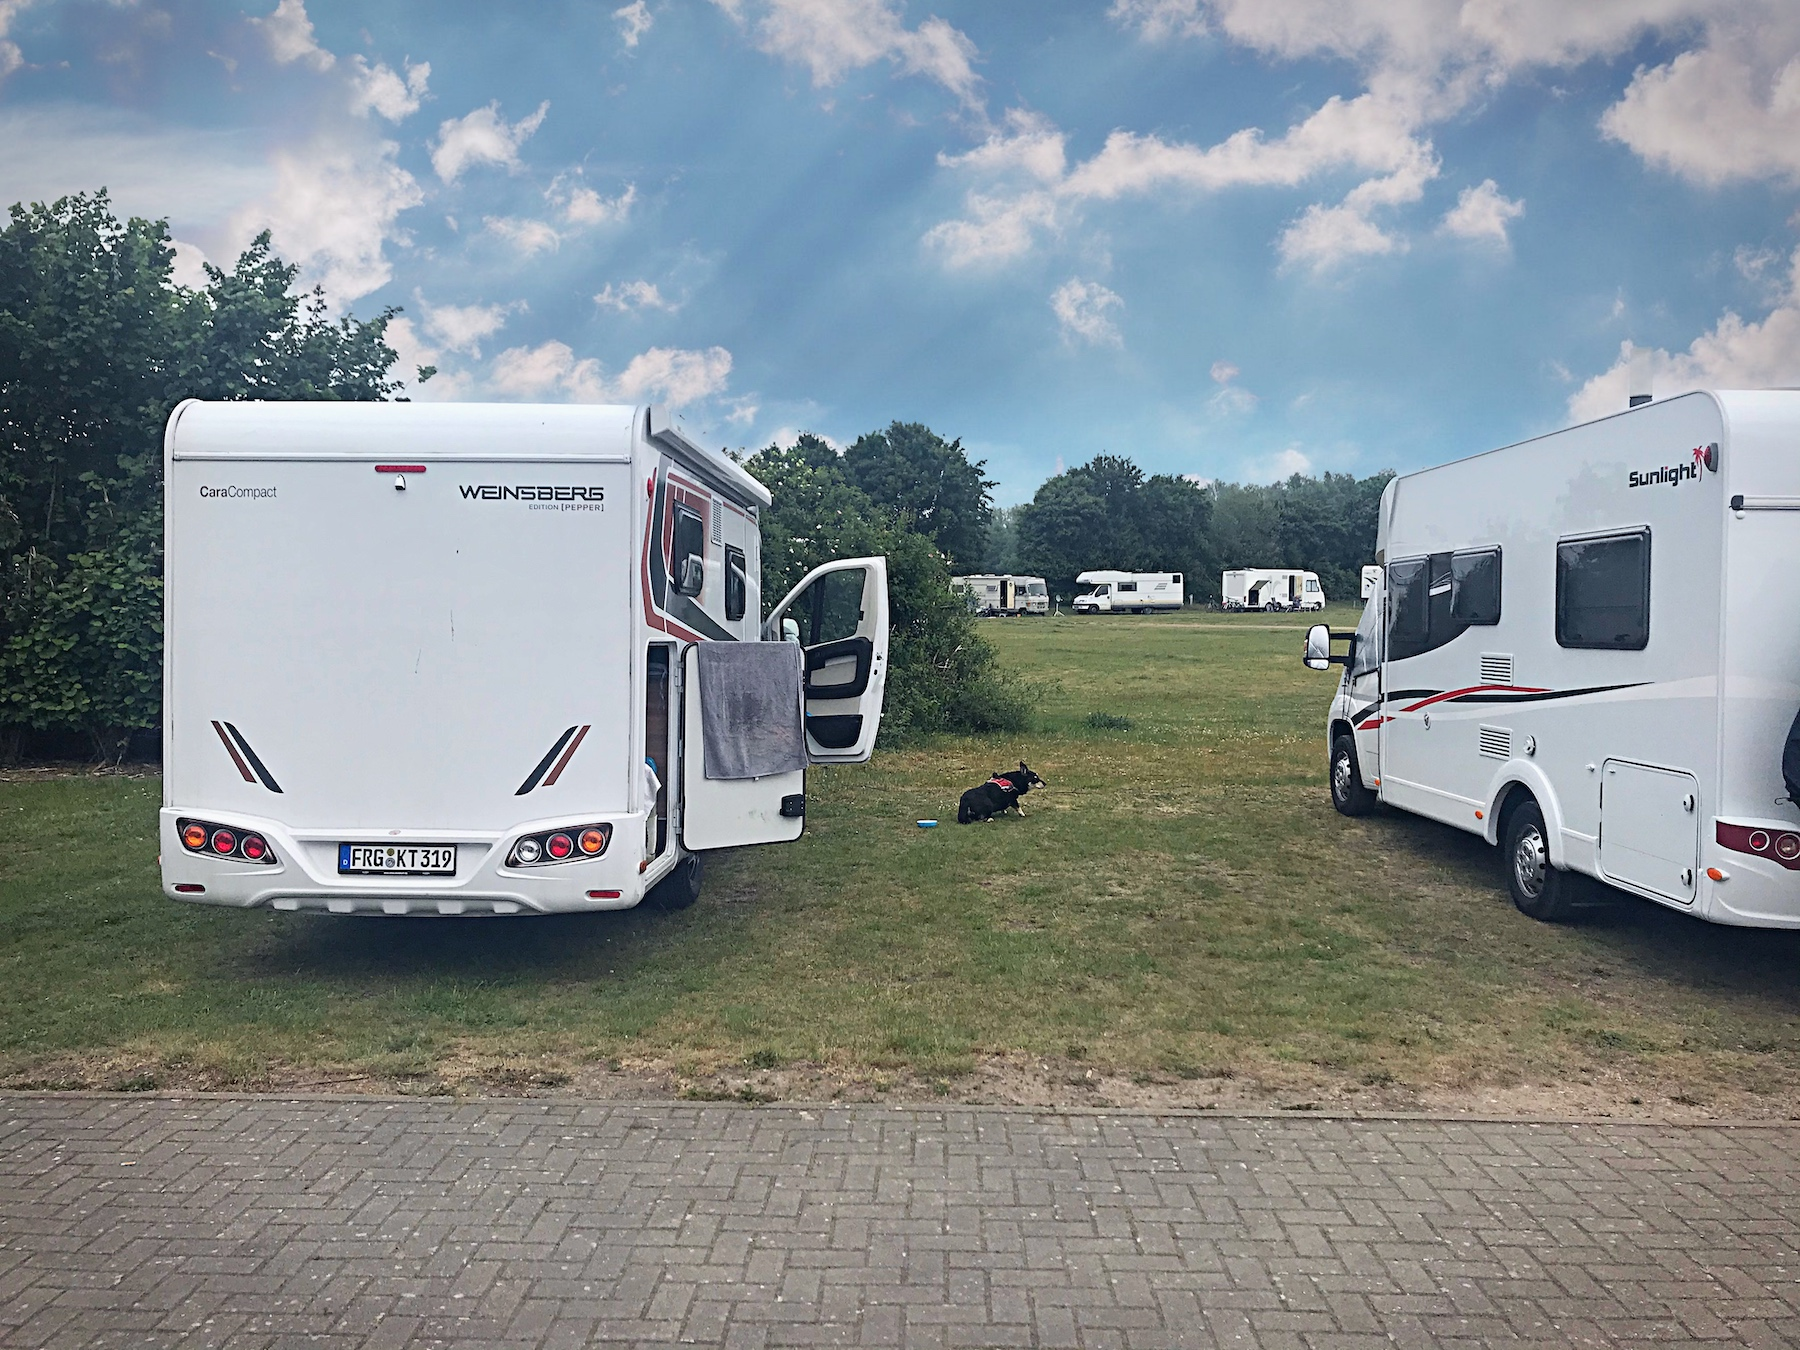 Wohnmobil Camping Corona Frühsommer Tour